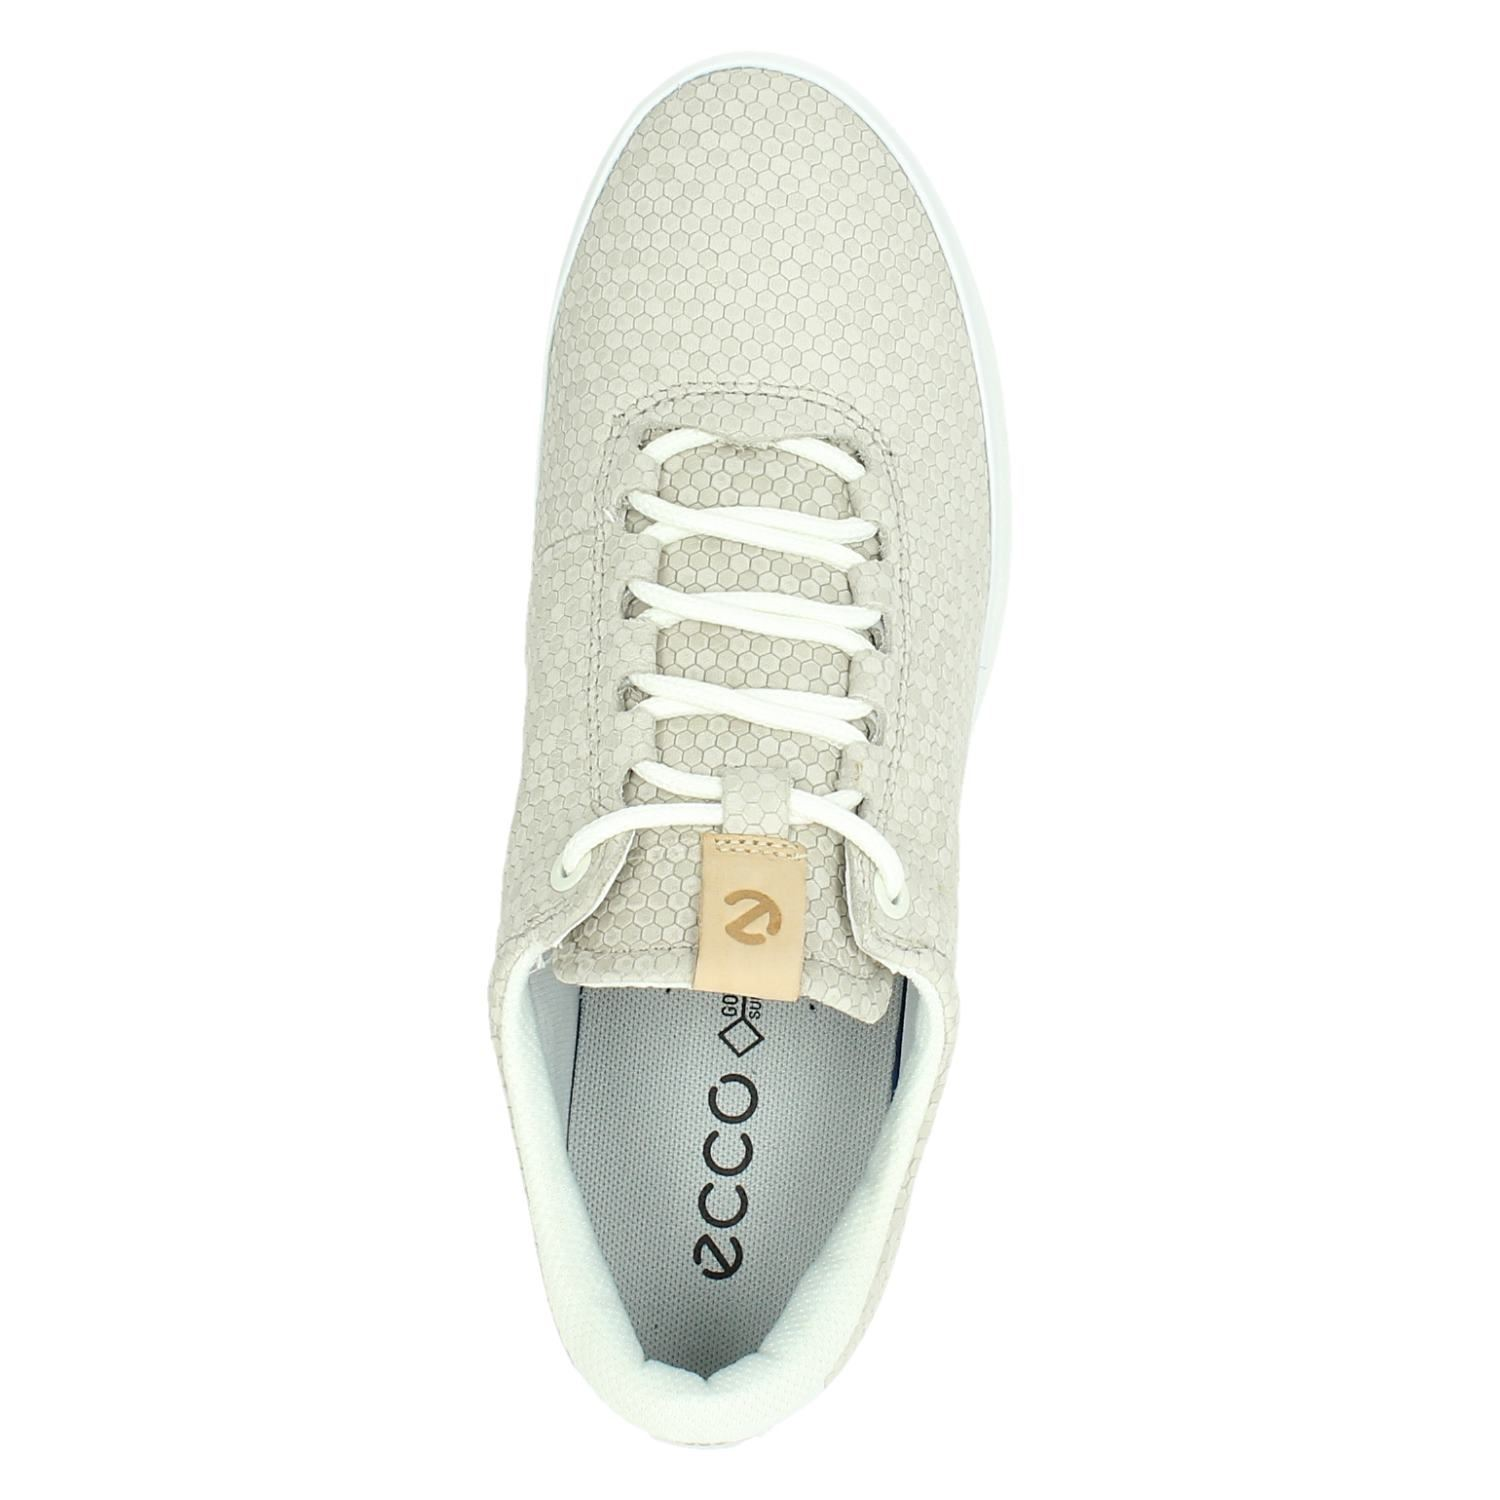 d73ee7560a6 Ecco Cool dames lage sneakers. Previous